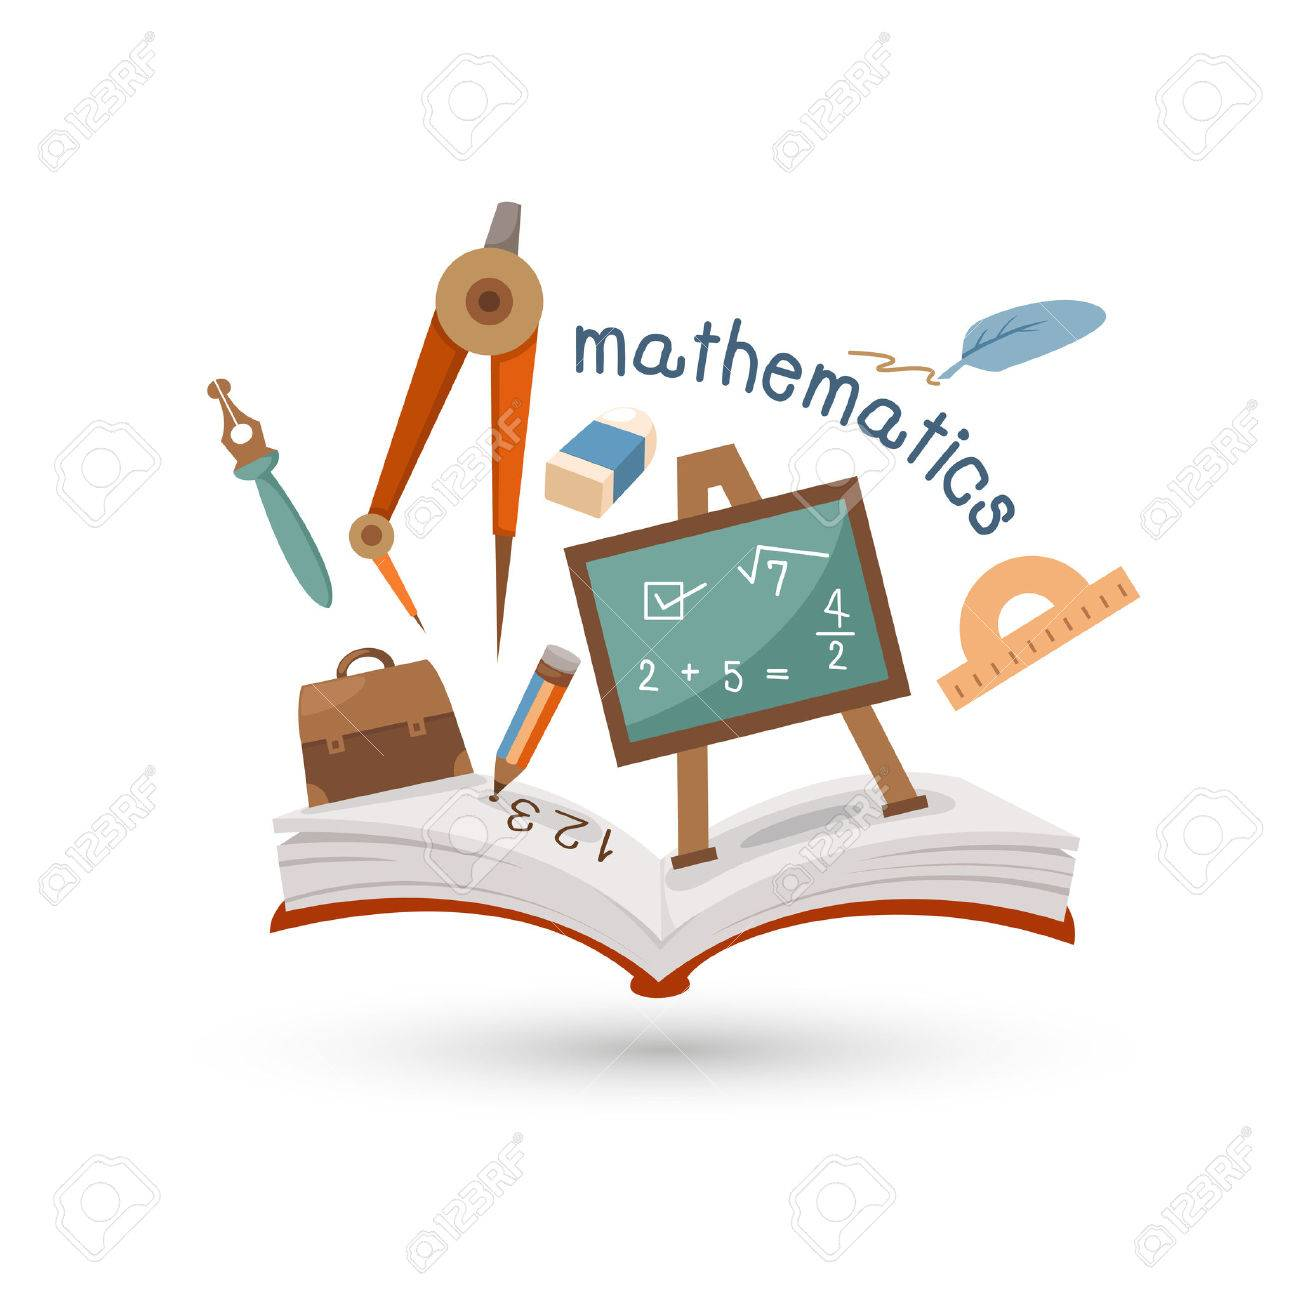 Open book and icons of mathematics  Concept of education Stock Vector - 25221238